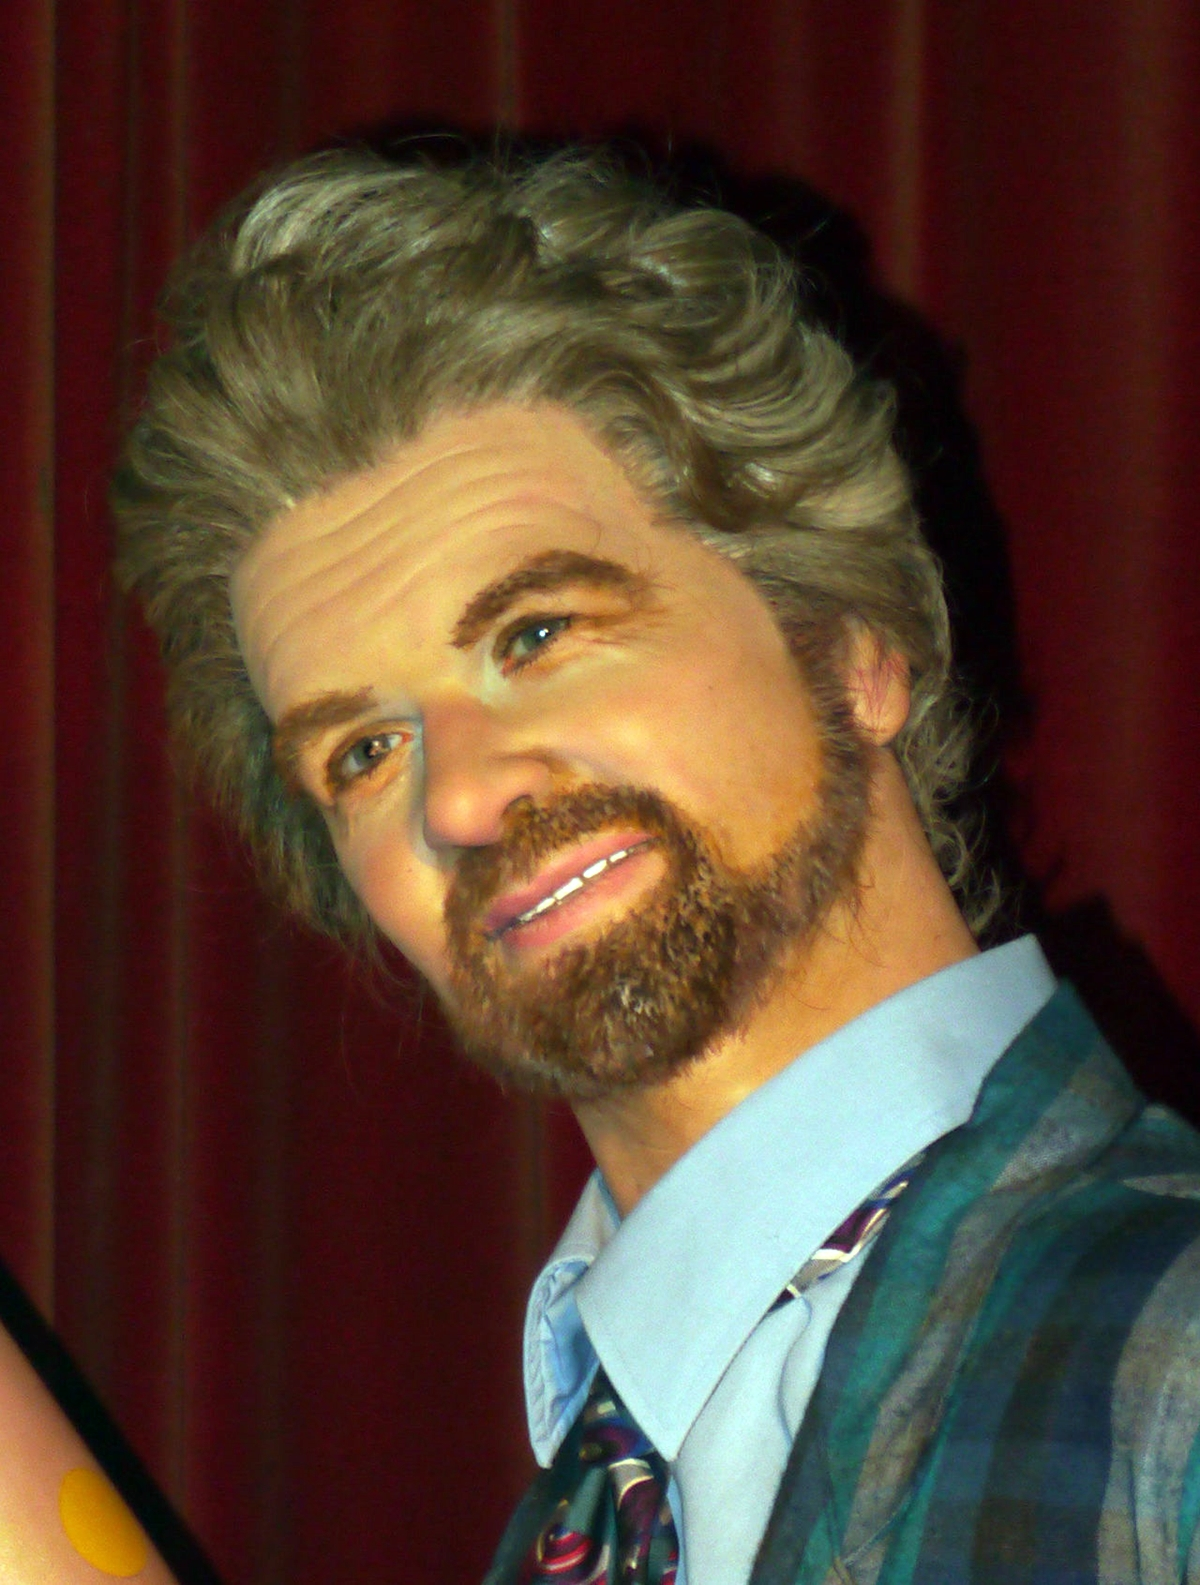 2 12 The 16 Worst Celebrity Waxworks Of All Time